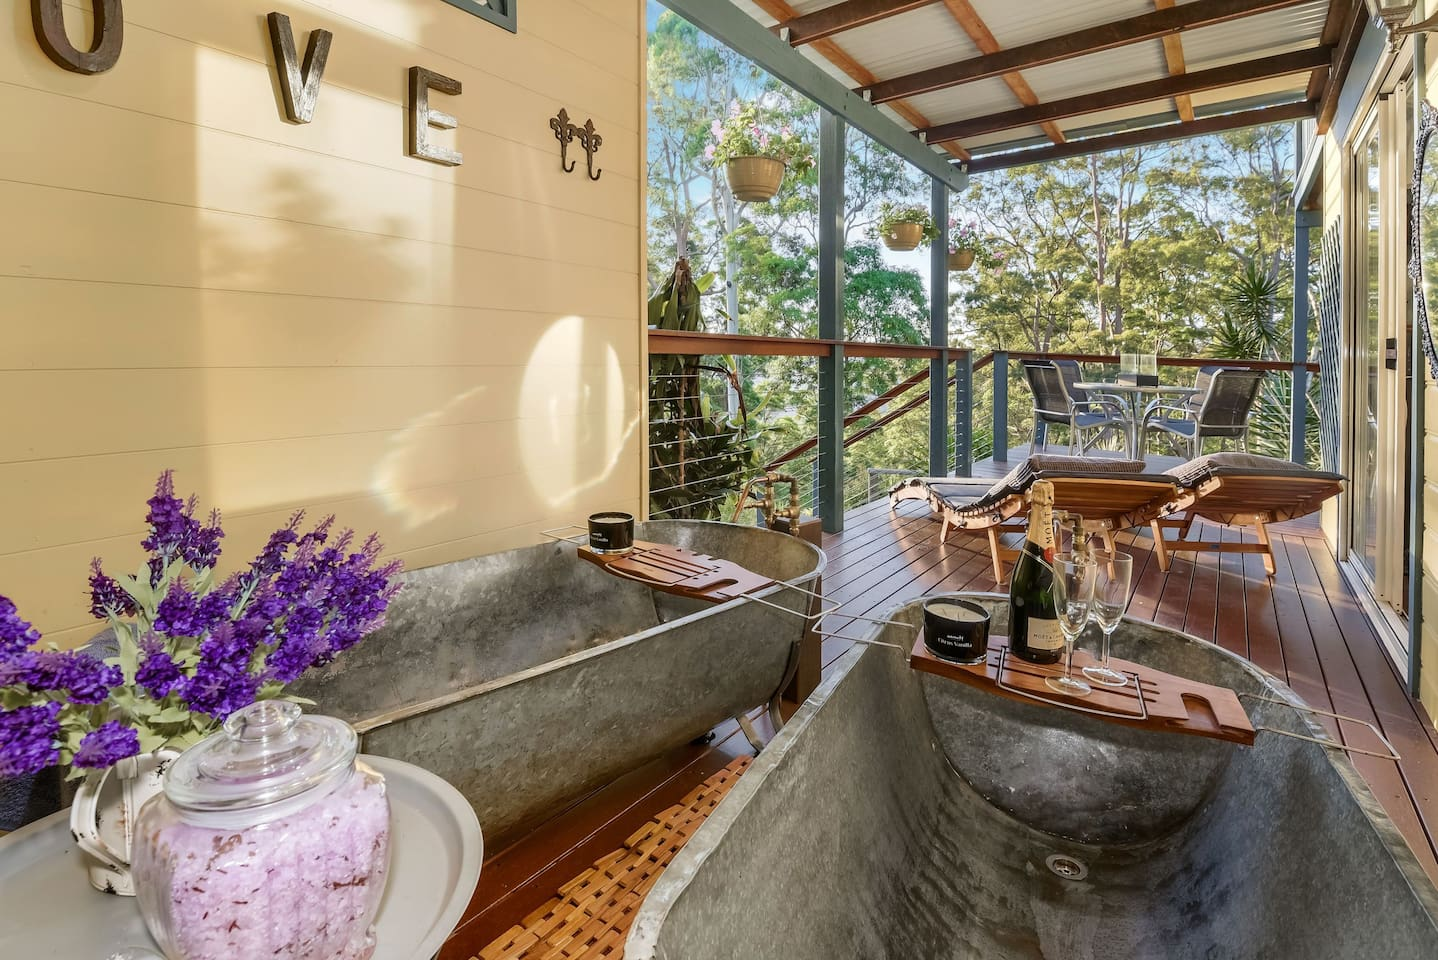 Relax on your private deck in these amazing antique outdoor baths with free bath crystals bubble bath and music.